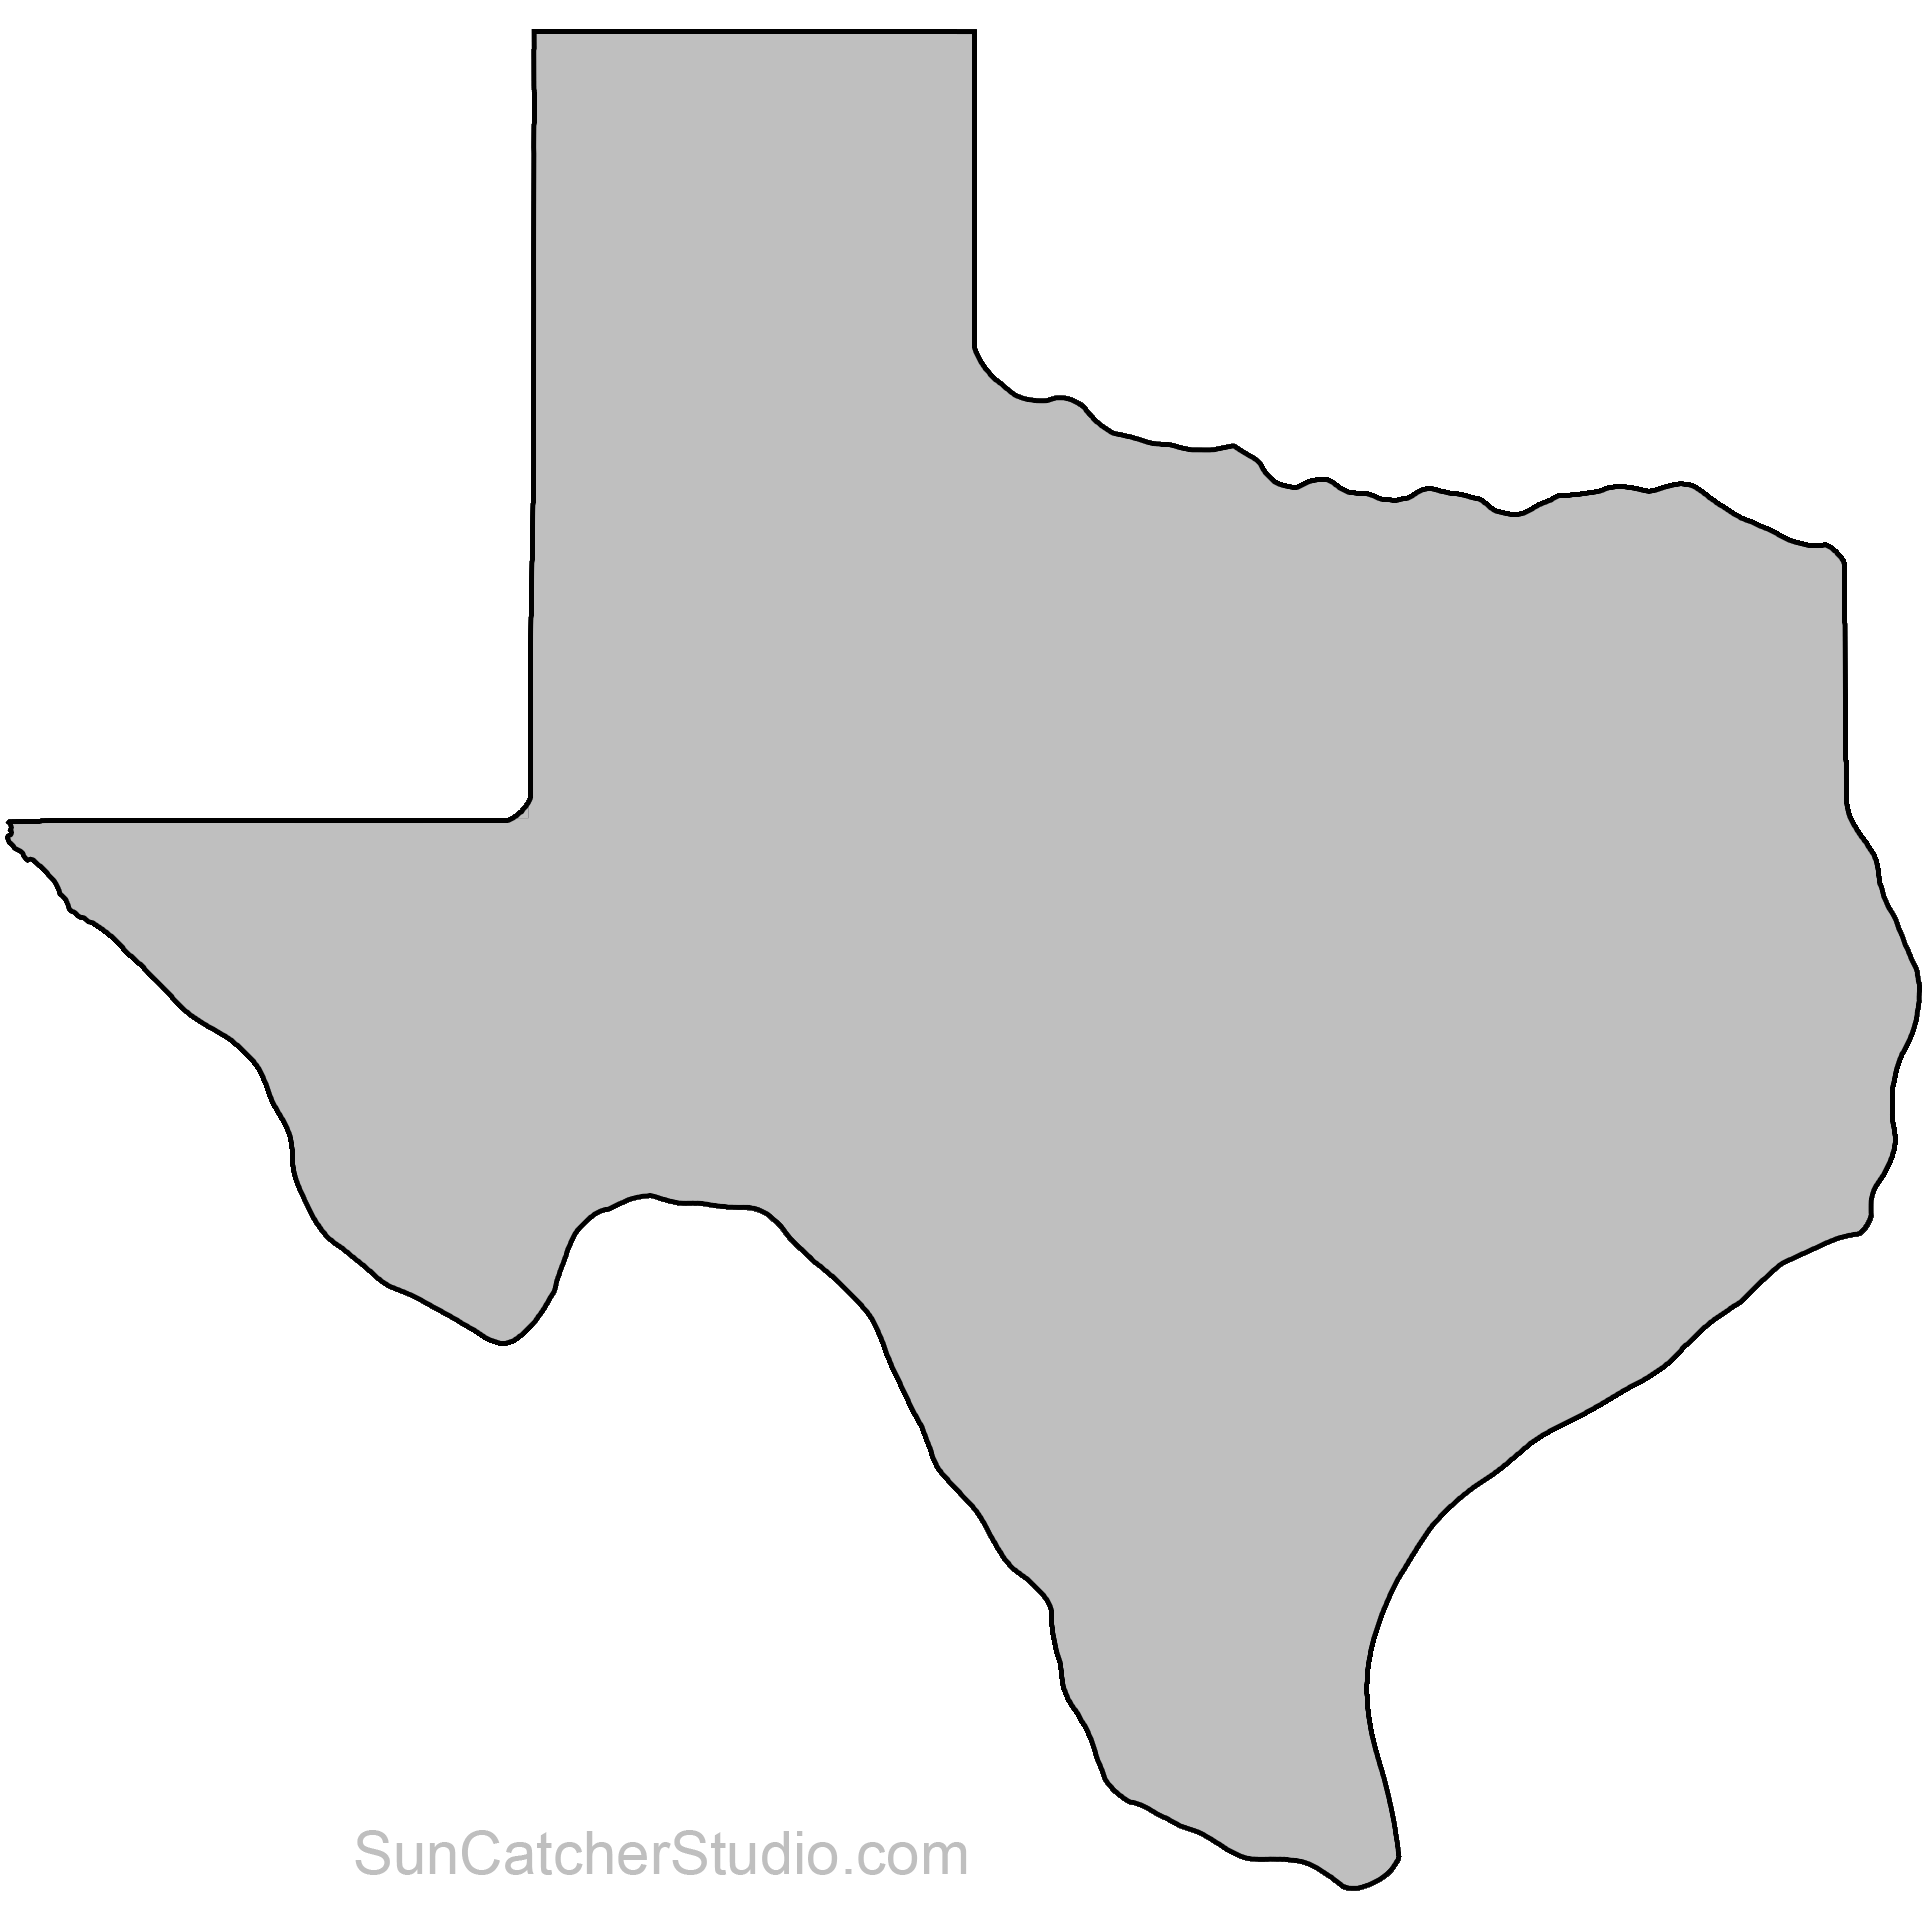 It's just an image of Dashing Texas Outline Printable